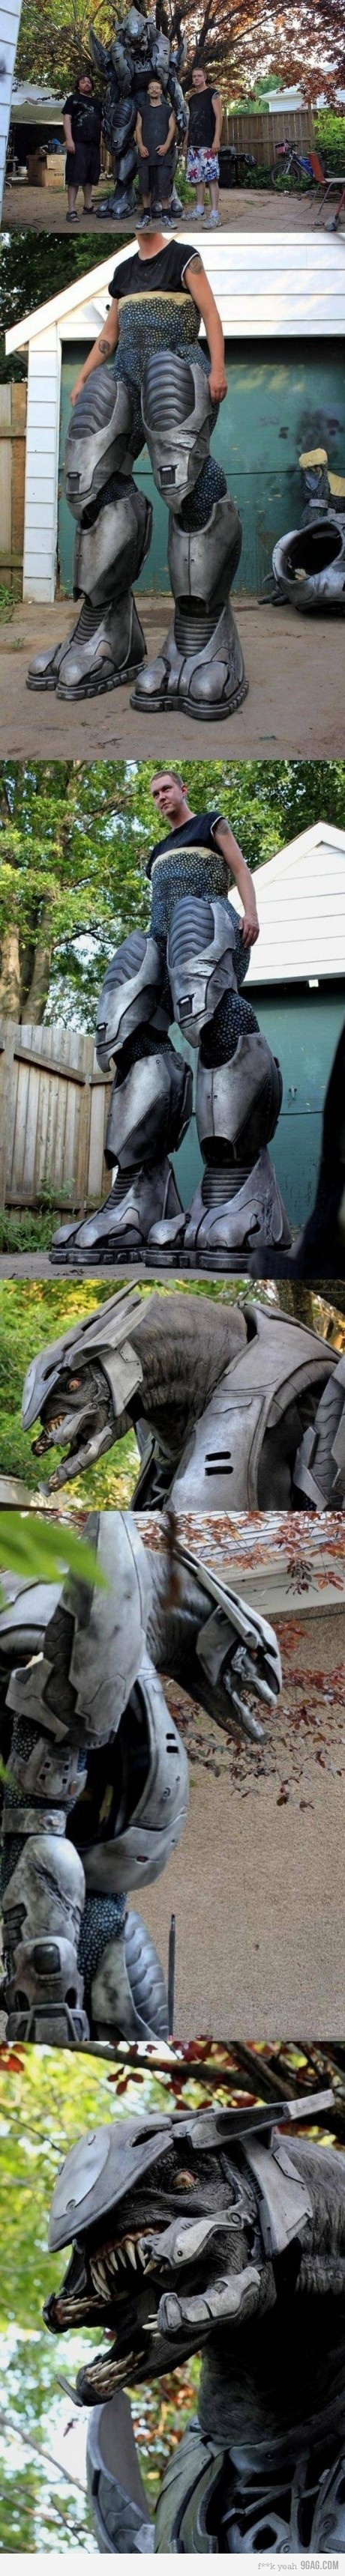 Awesome Costume oh my god it's a spartan from halo! --> Awesomeness - you're doing it right.